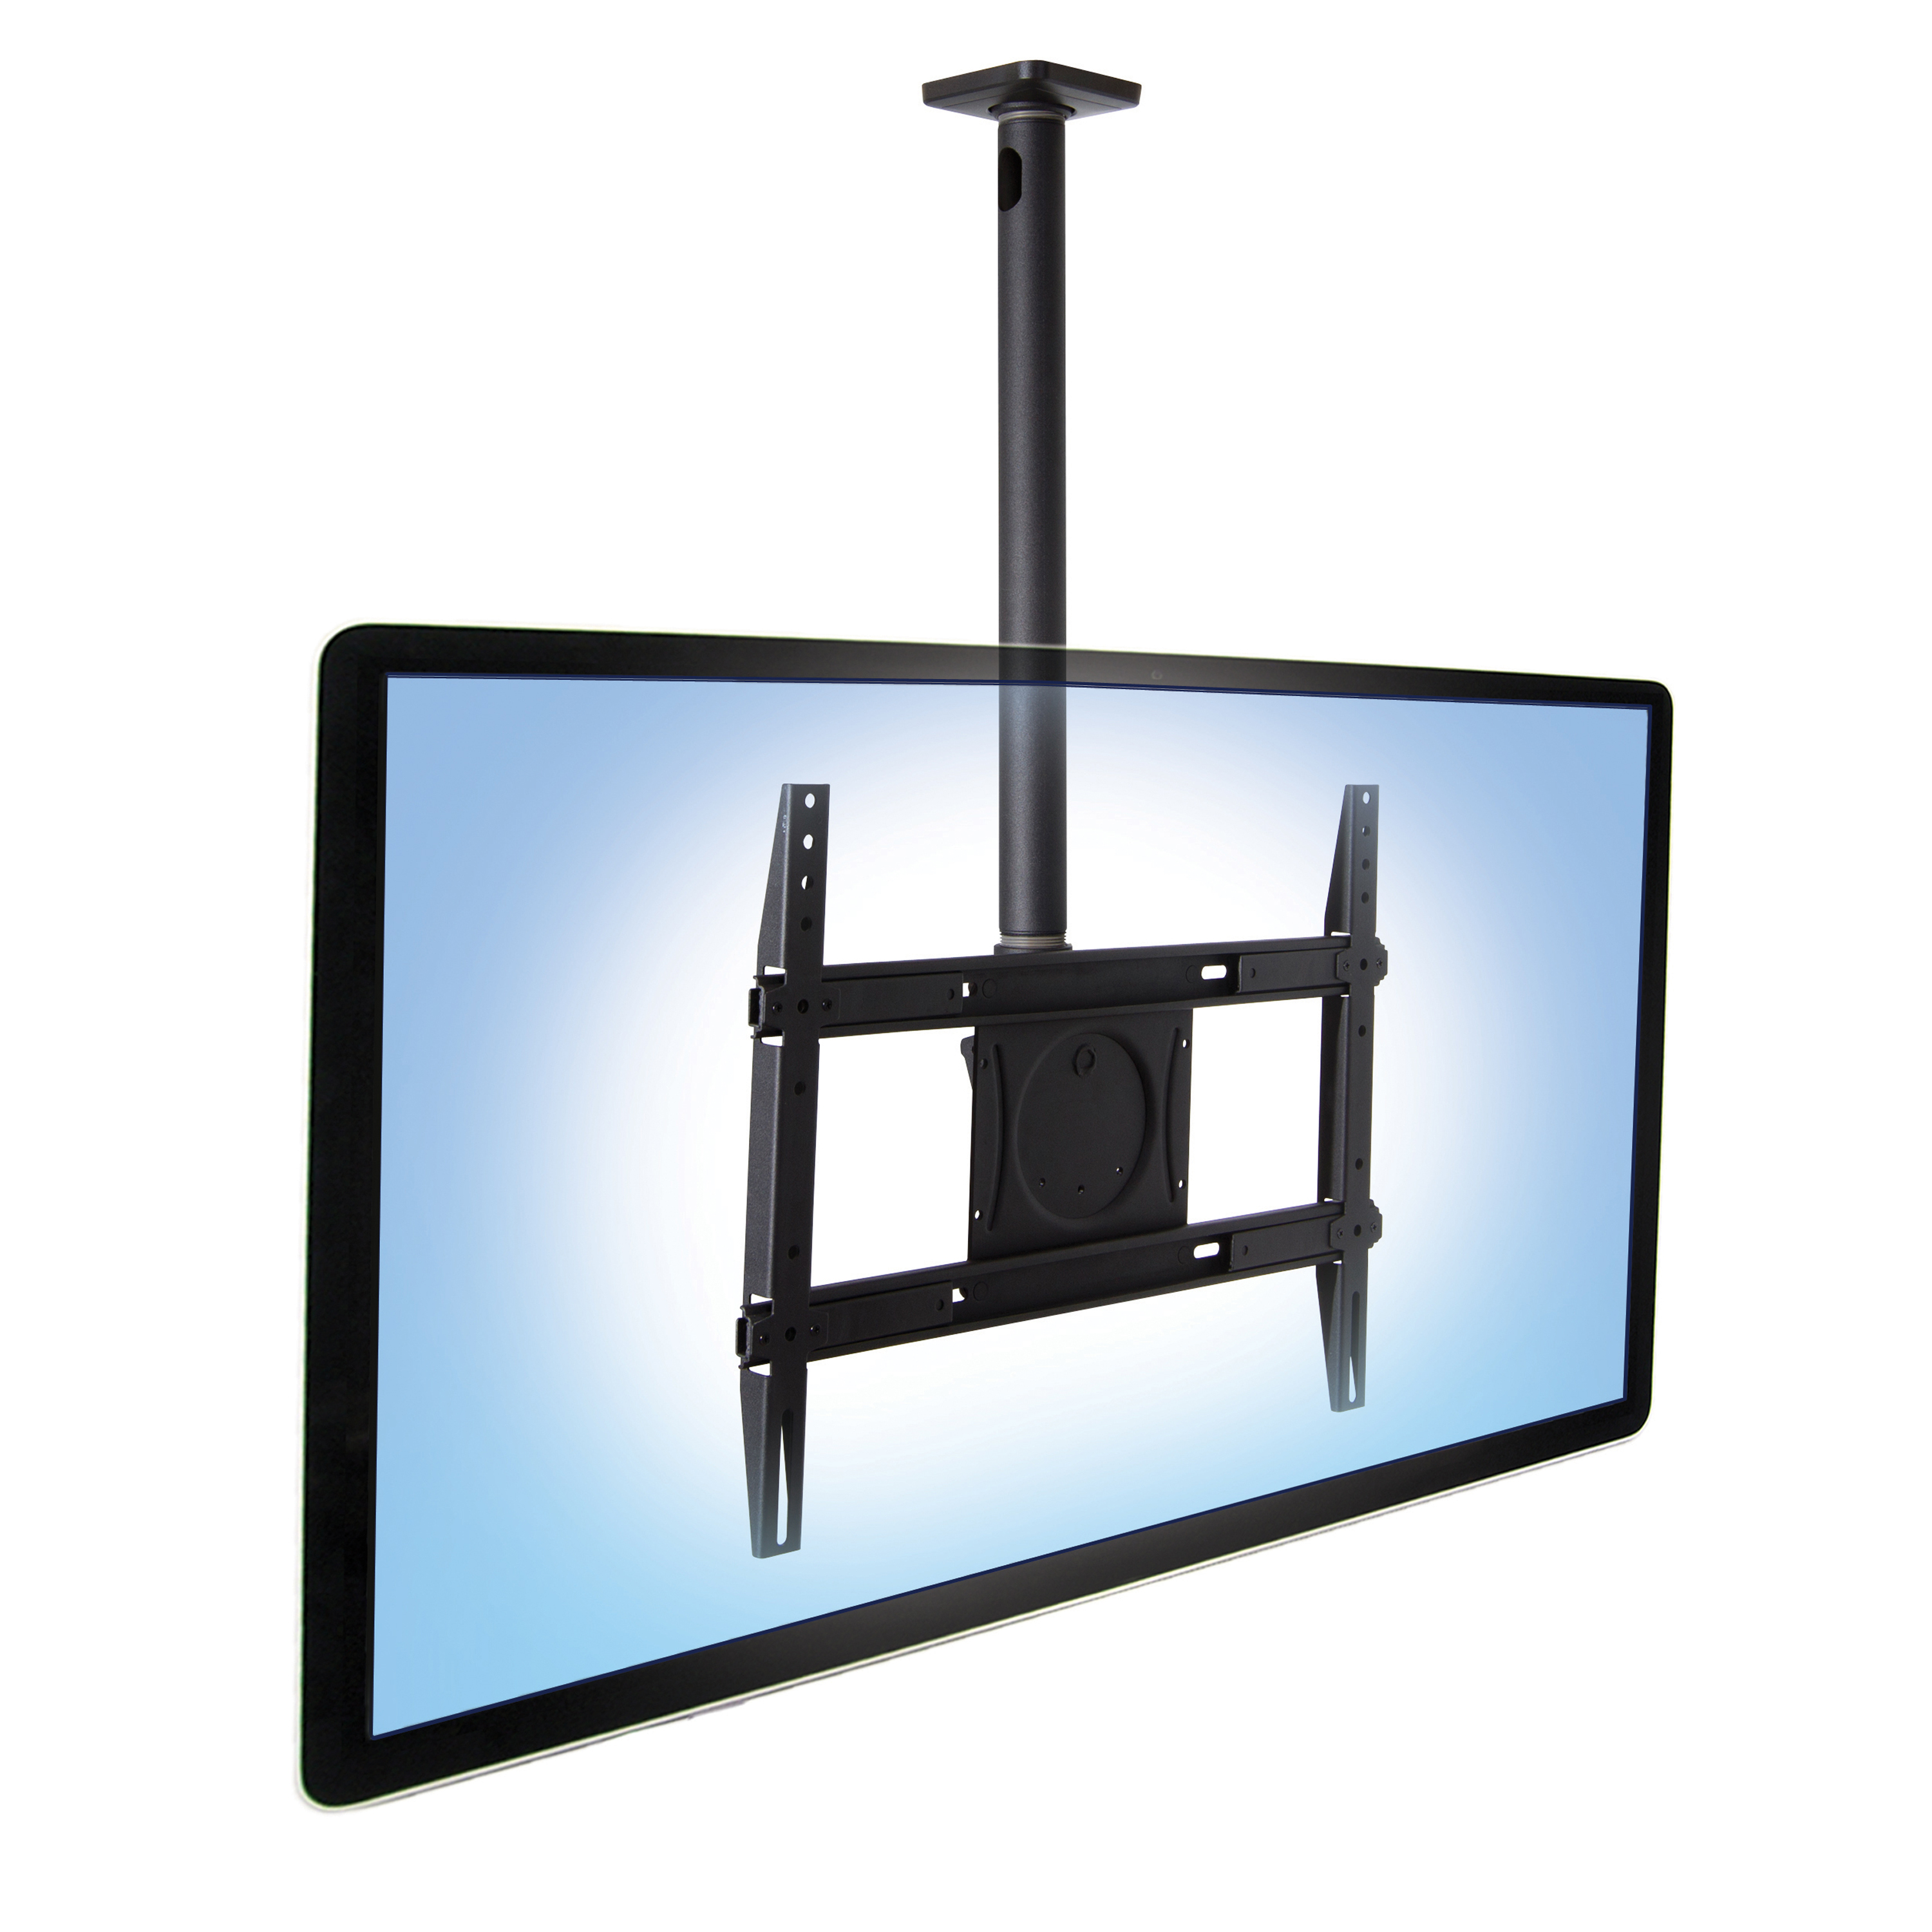 wall back bracket mounted room cheap of ideas ceiling decoration living latest for design stand samsung high plasma led ceilings wooden square unit stands designs inspiration images size surripui simple decor shelves lcd glamorous corner buy mount showcase cabinet with full inch tv